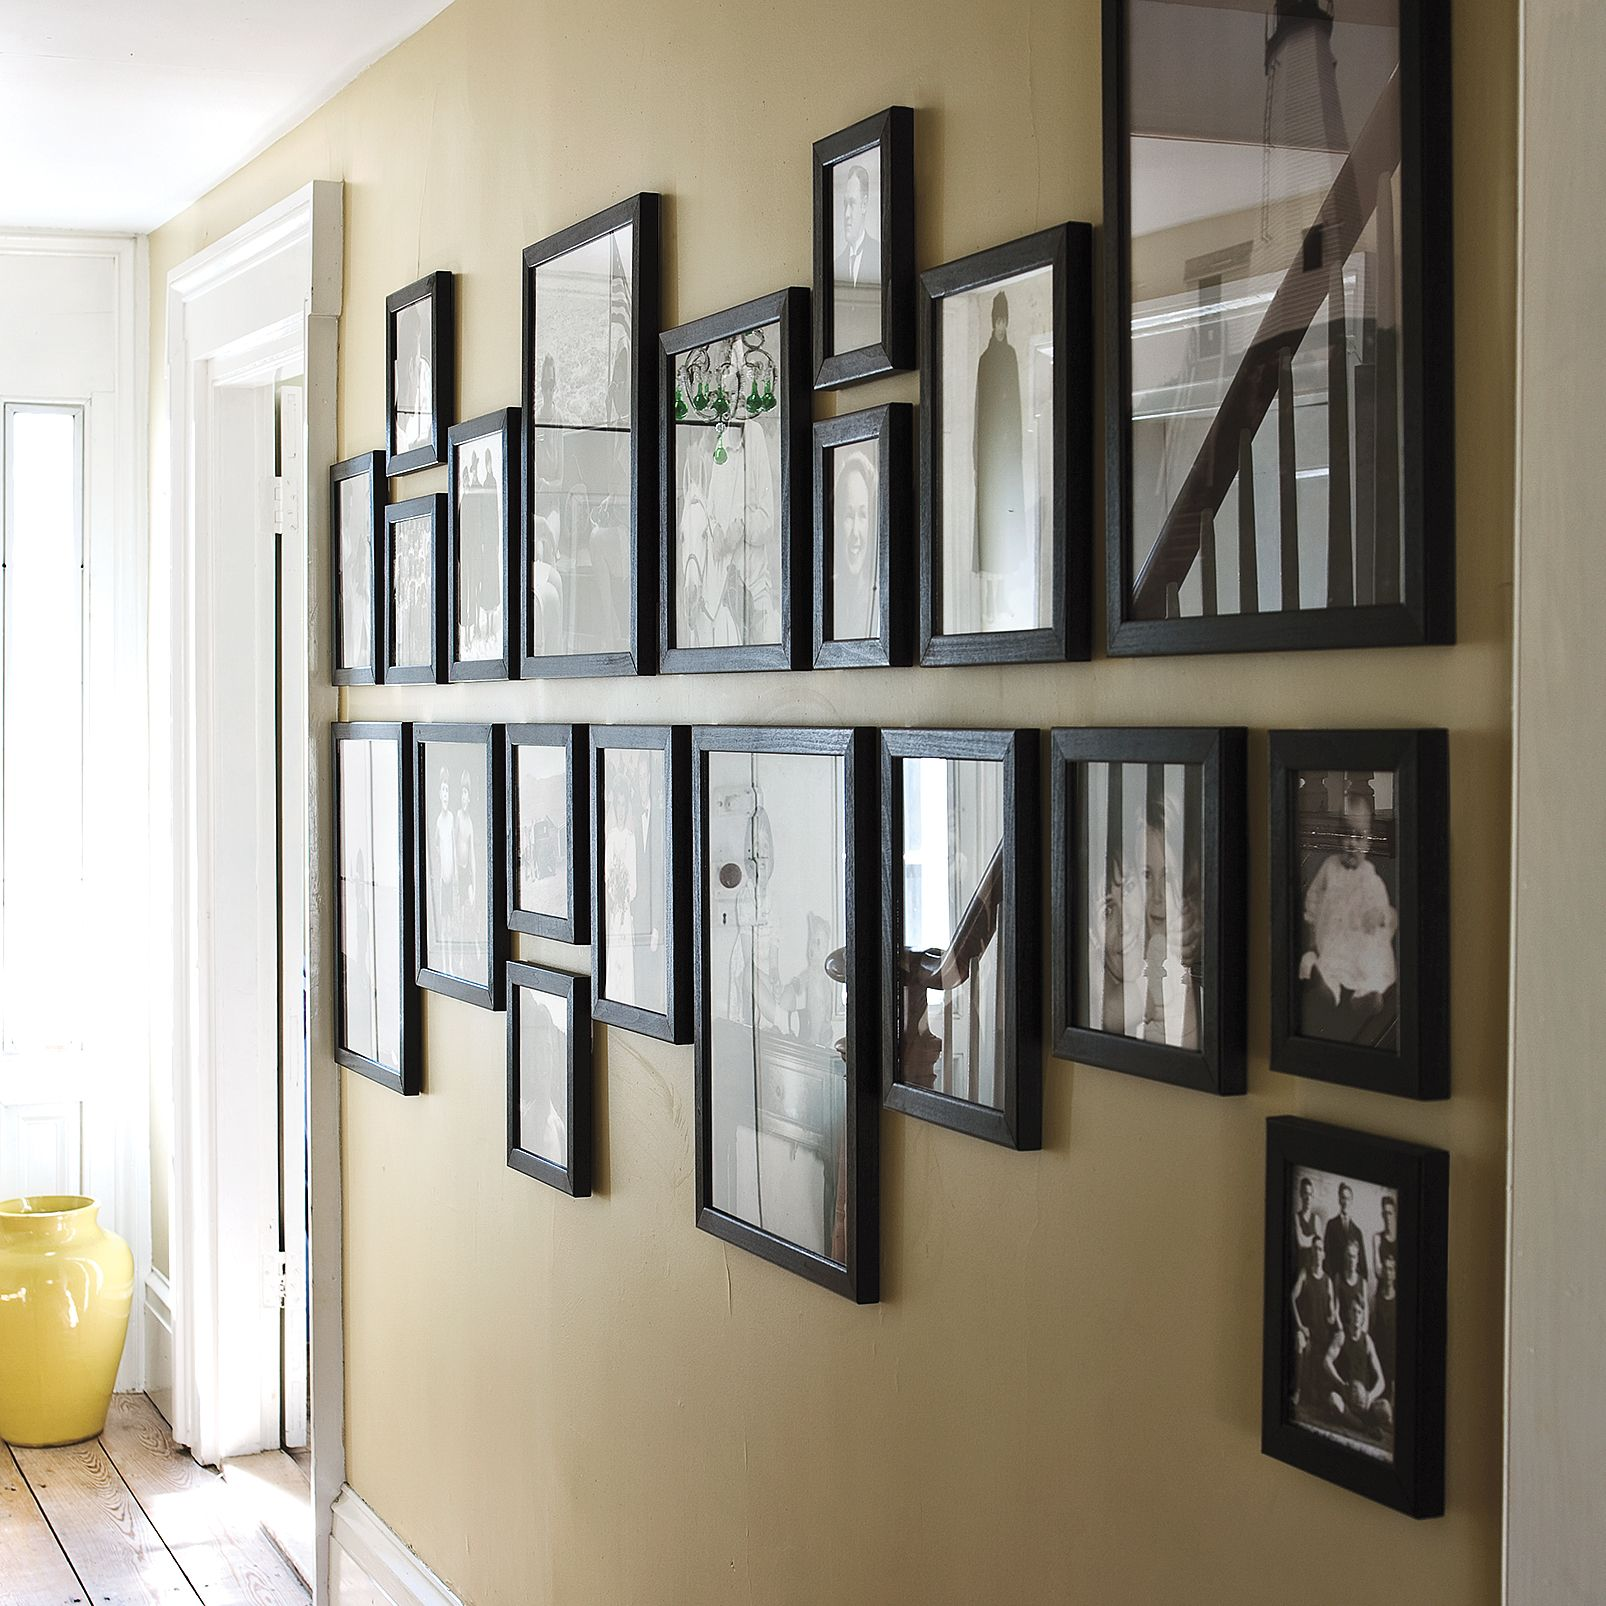 Weekend Project: Create Gallery Walls | Photo grouping, Wall ideas ...